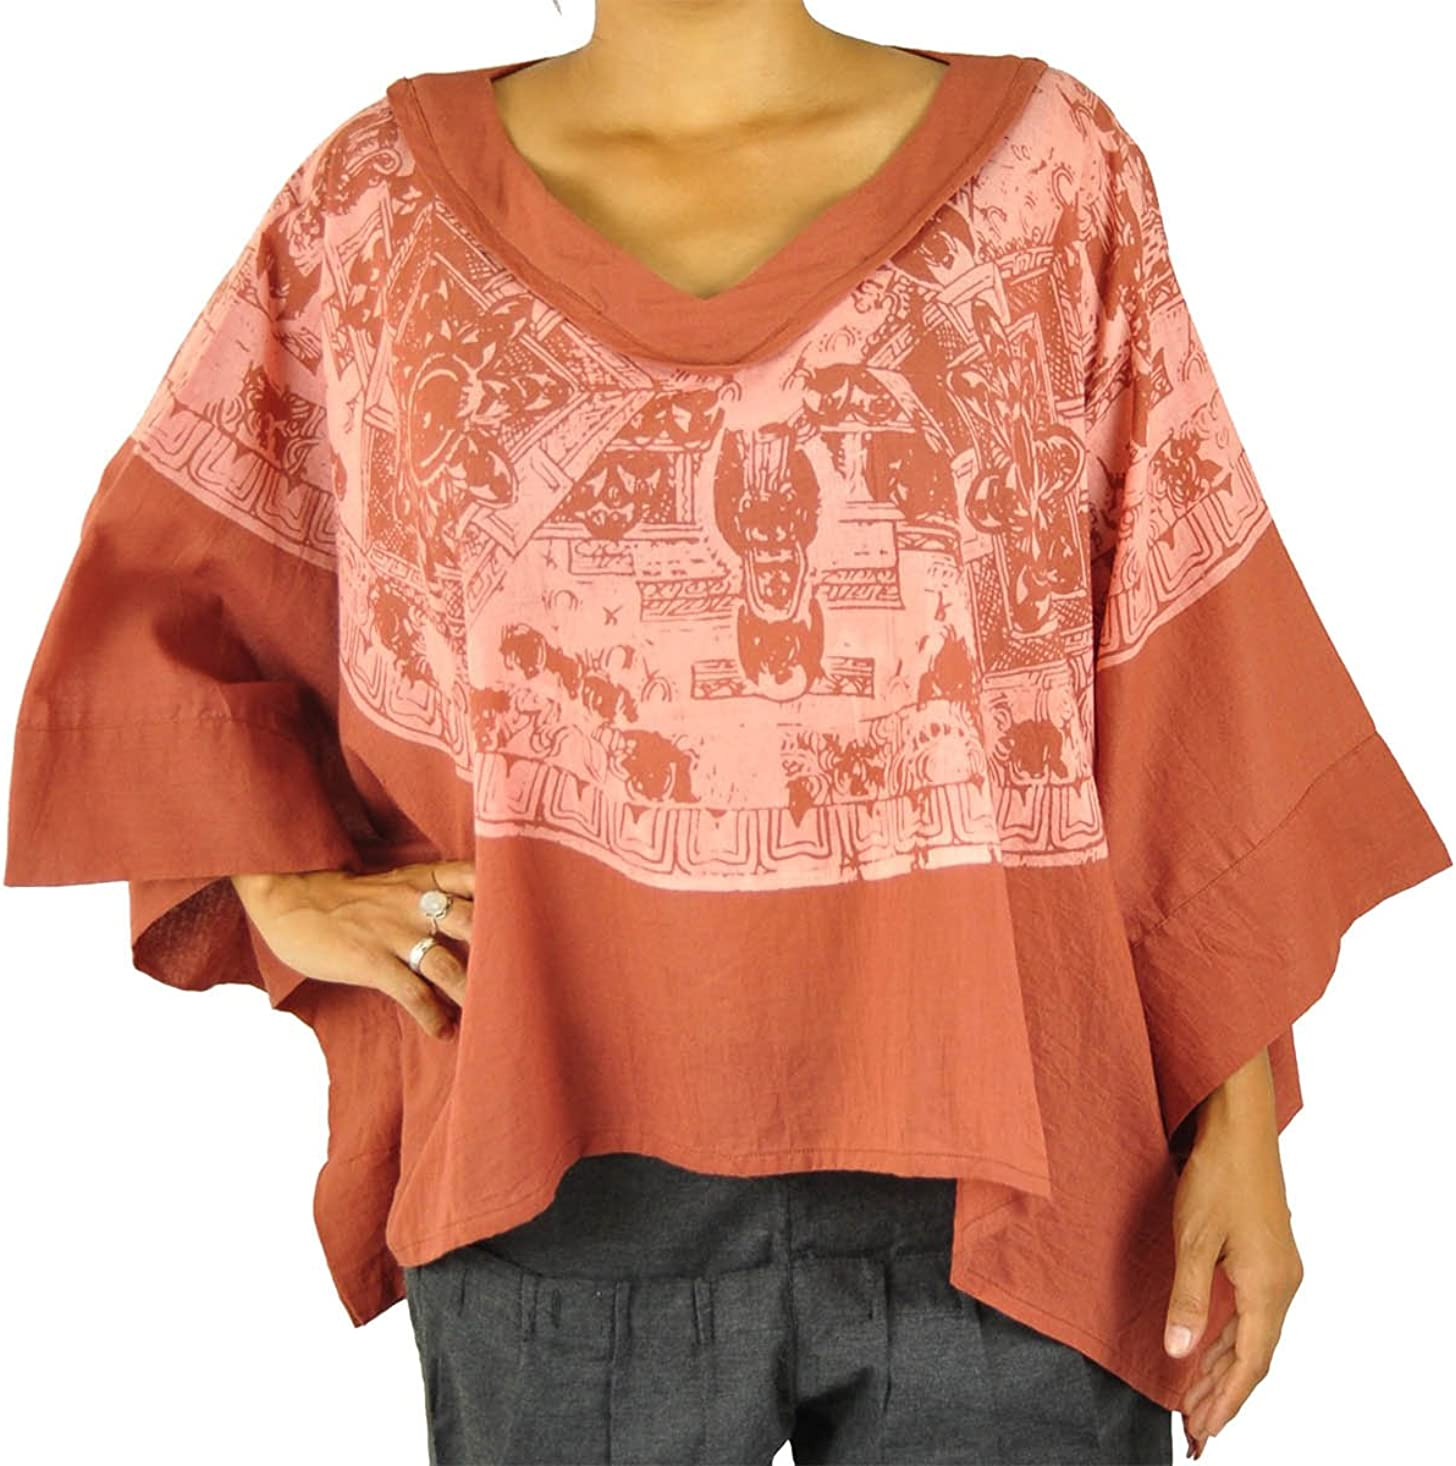 virblatt Alternativa Poncho Ropa señoras Hippie Alternativa Fashion Parte Superior con Pintado a Mano Mandala One-Size-Fits tamaños S-XL – Mercadillo